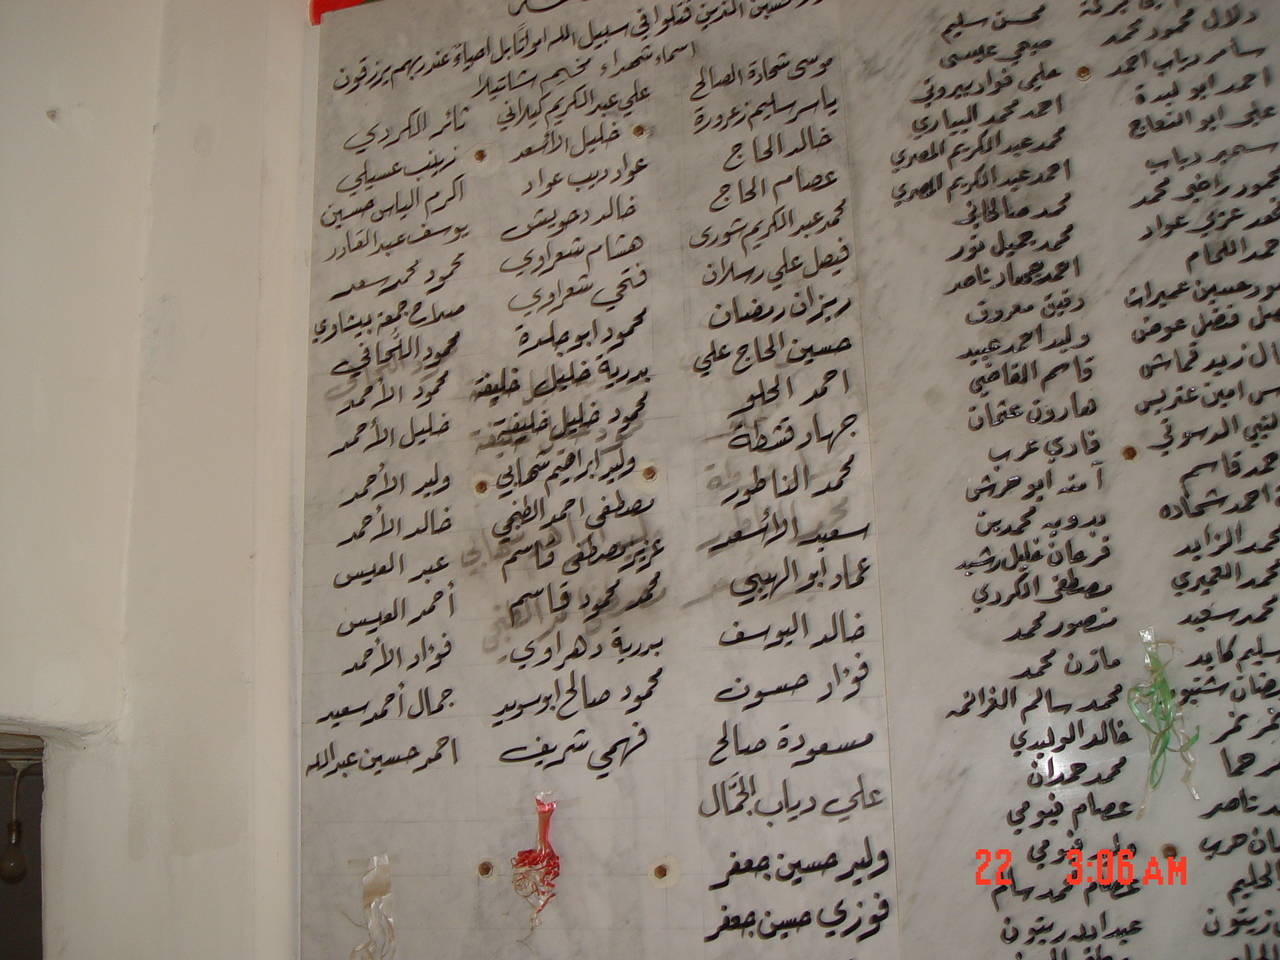 Shatila R.C. - مخيّم شاتيله : During the War of the Camps between Palestinians and Amal Militia in the mid-1980s, Amal surrounded and pounded all the camps in and around Beirut. Below is the name listing for the martyrs buried in a mass grave inside the camp since they could not be buried in the cemetery outside. <a href=